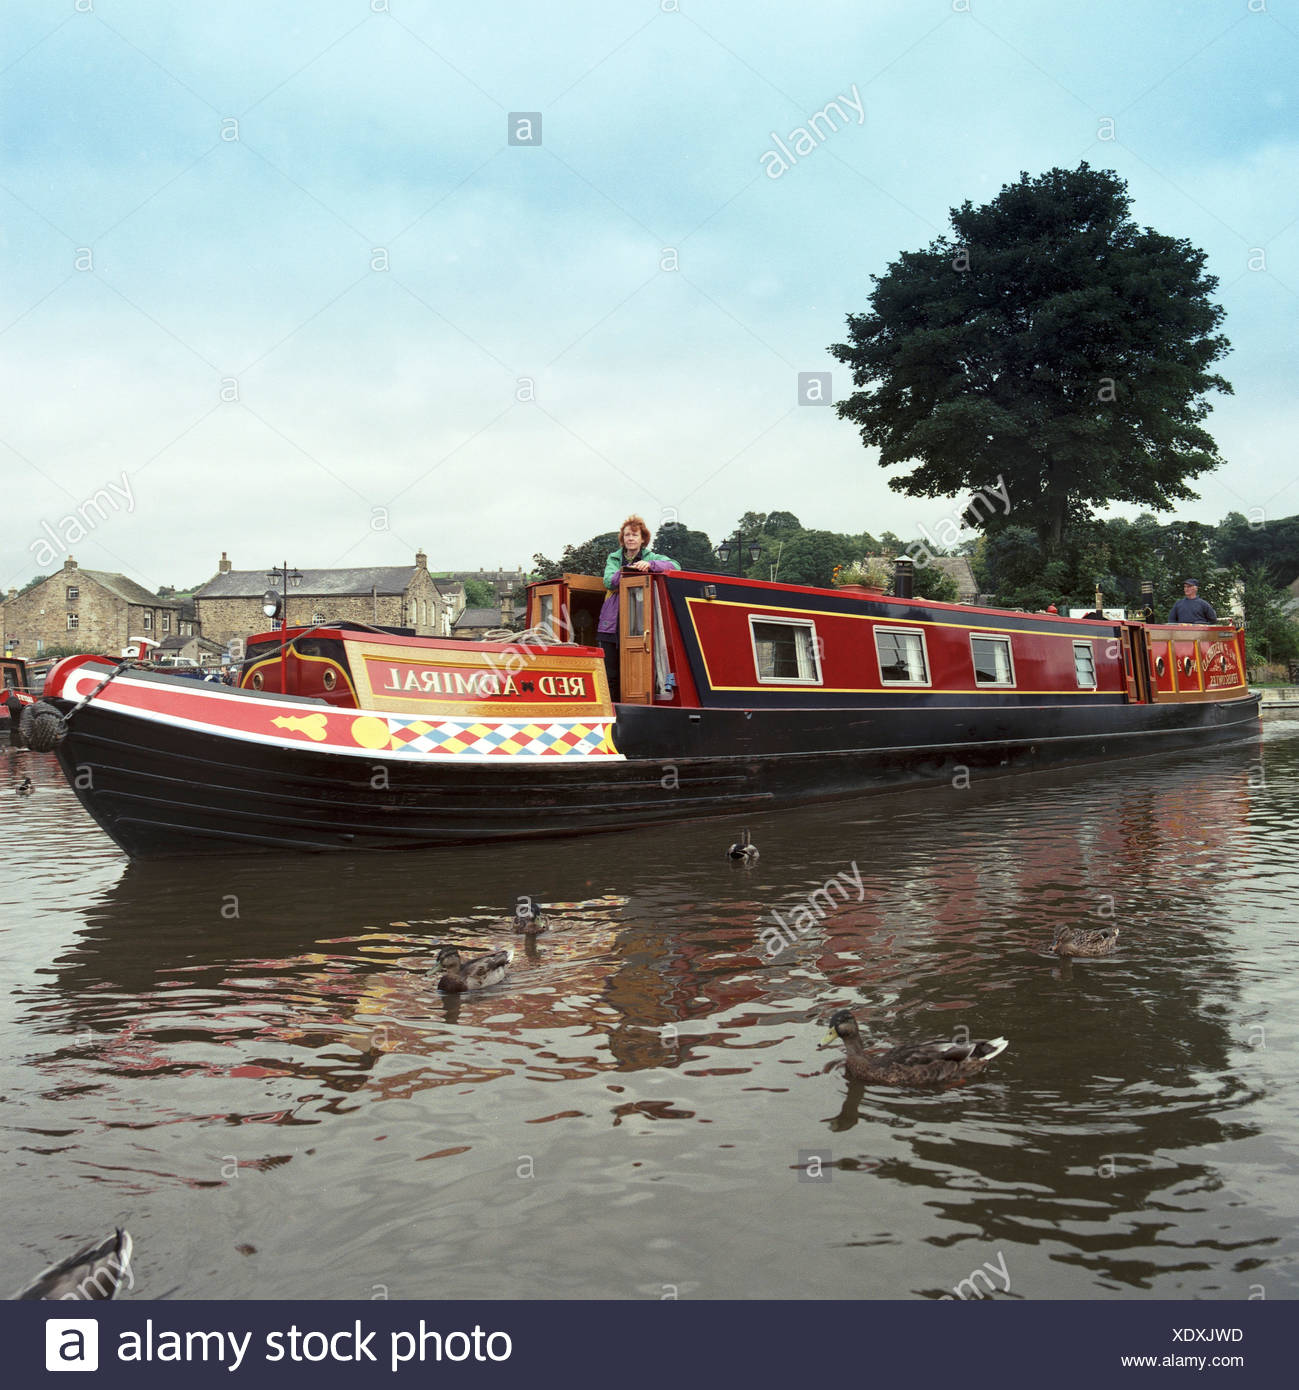 United Kingdom. England. Cheshire East. Middlewich. Narrowboat on canal. - Stock Image